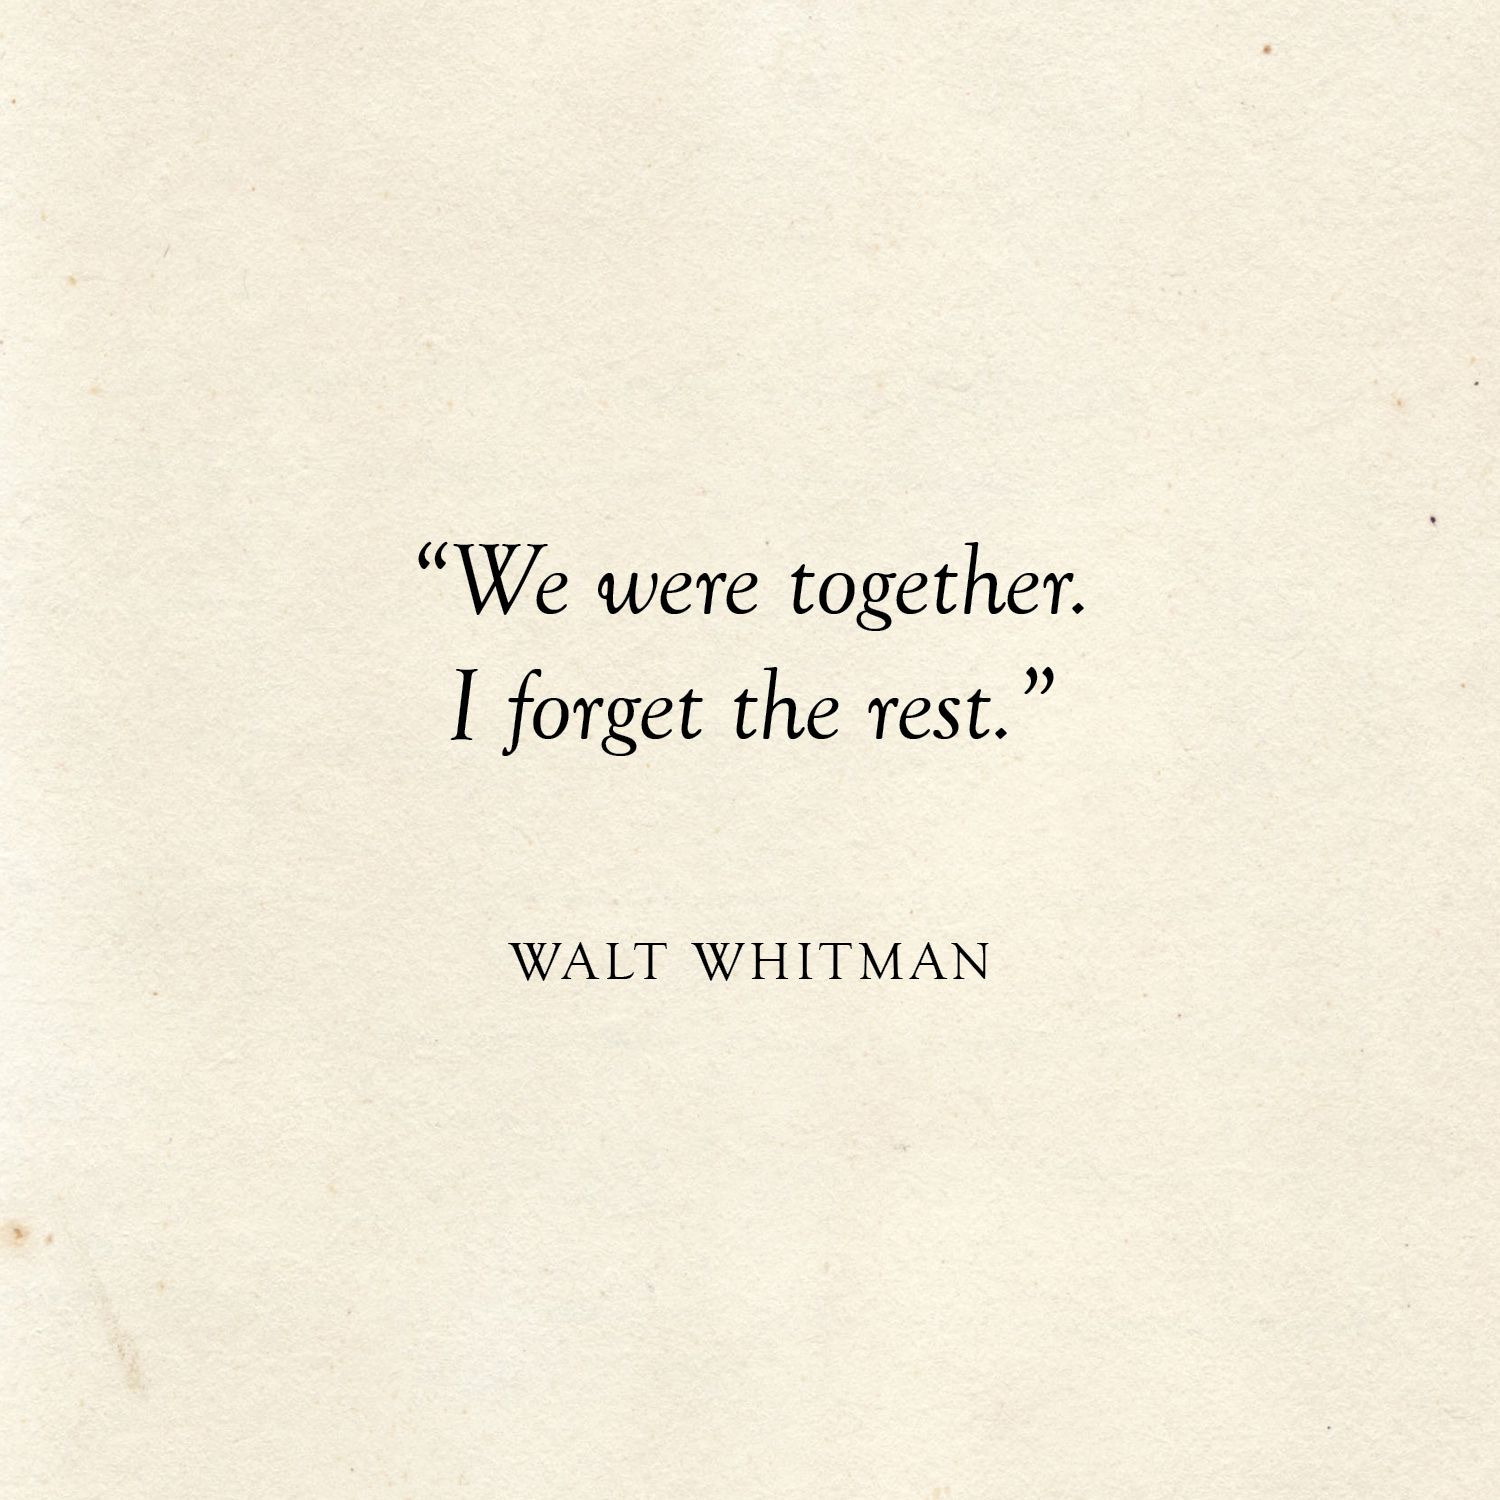 Literary Wedding Love Quotes We Were Together I Forget The Rest Walt Whitman Quote Love Quotes For Wedding Literary Love Quotes Famous Book Quotes